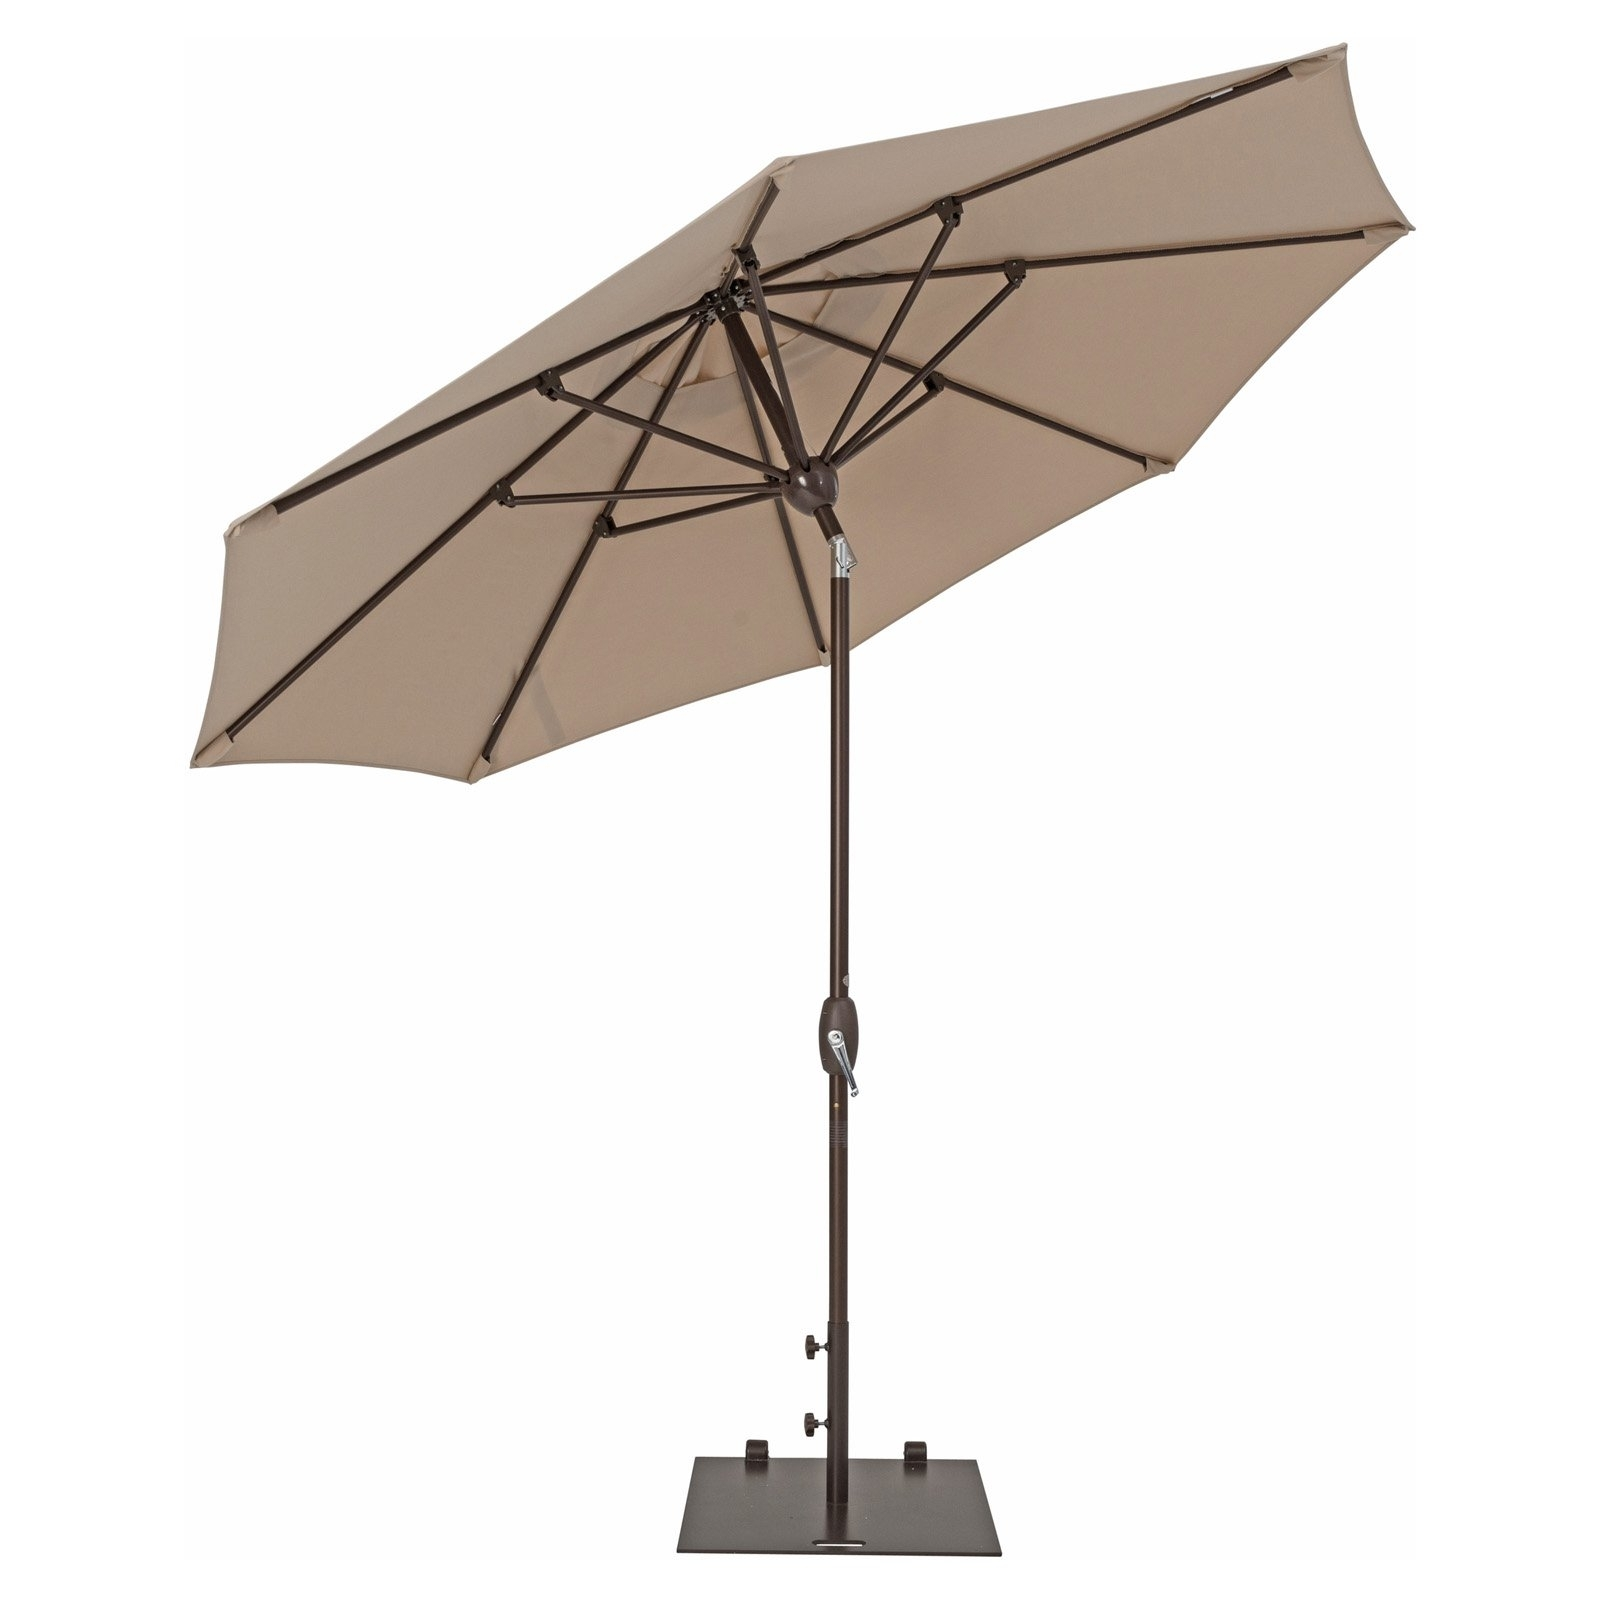 Preferred Patio Umbrellas With Sunbrella Fabric Regarding Trueshade Plus 9' Market Umbrella With Sunbrella Fabric, Auto Tilt (Gallery 10 of 20)